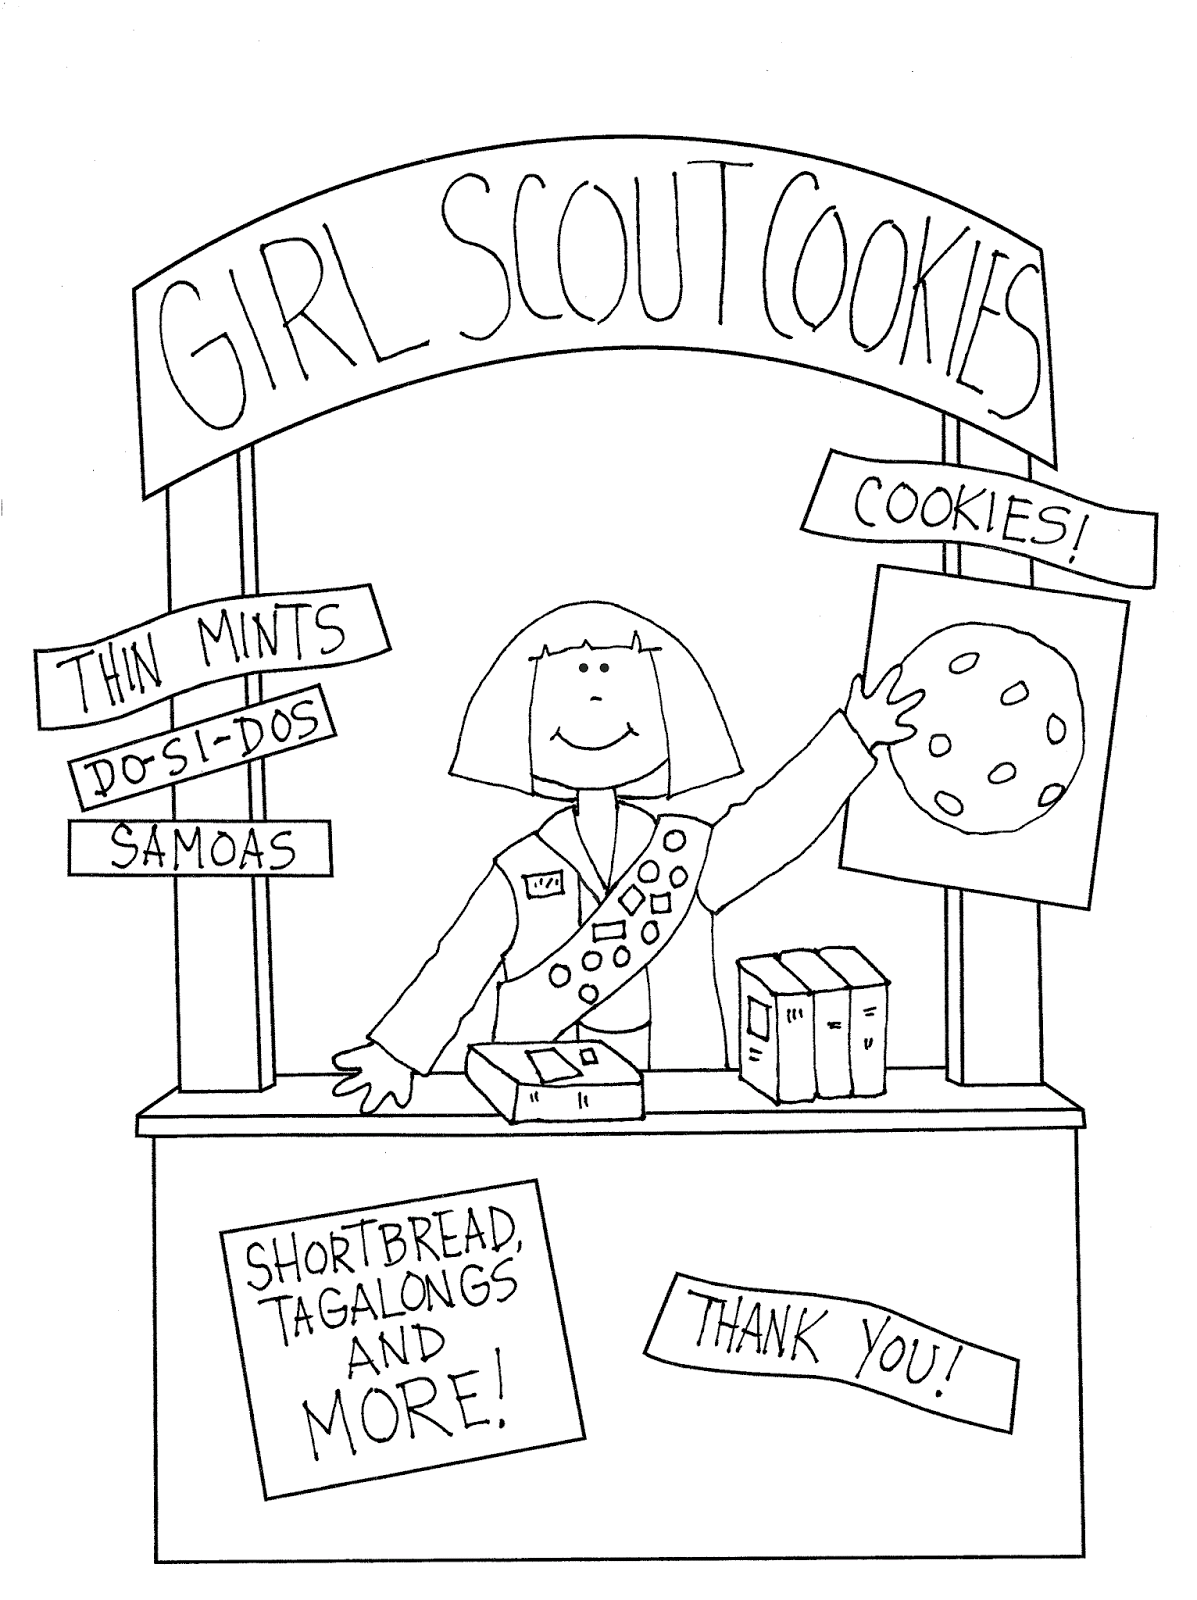 girl scout cookies coloring pages girl scout cookie drawing at getdrawings free download scout coloring girl cookies pages